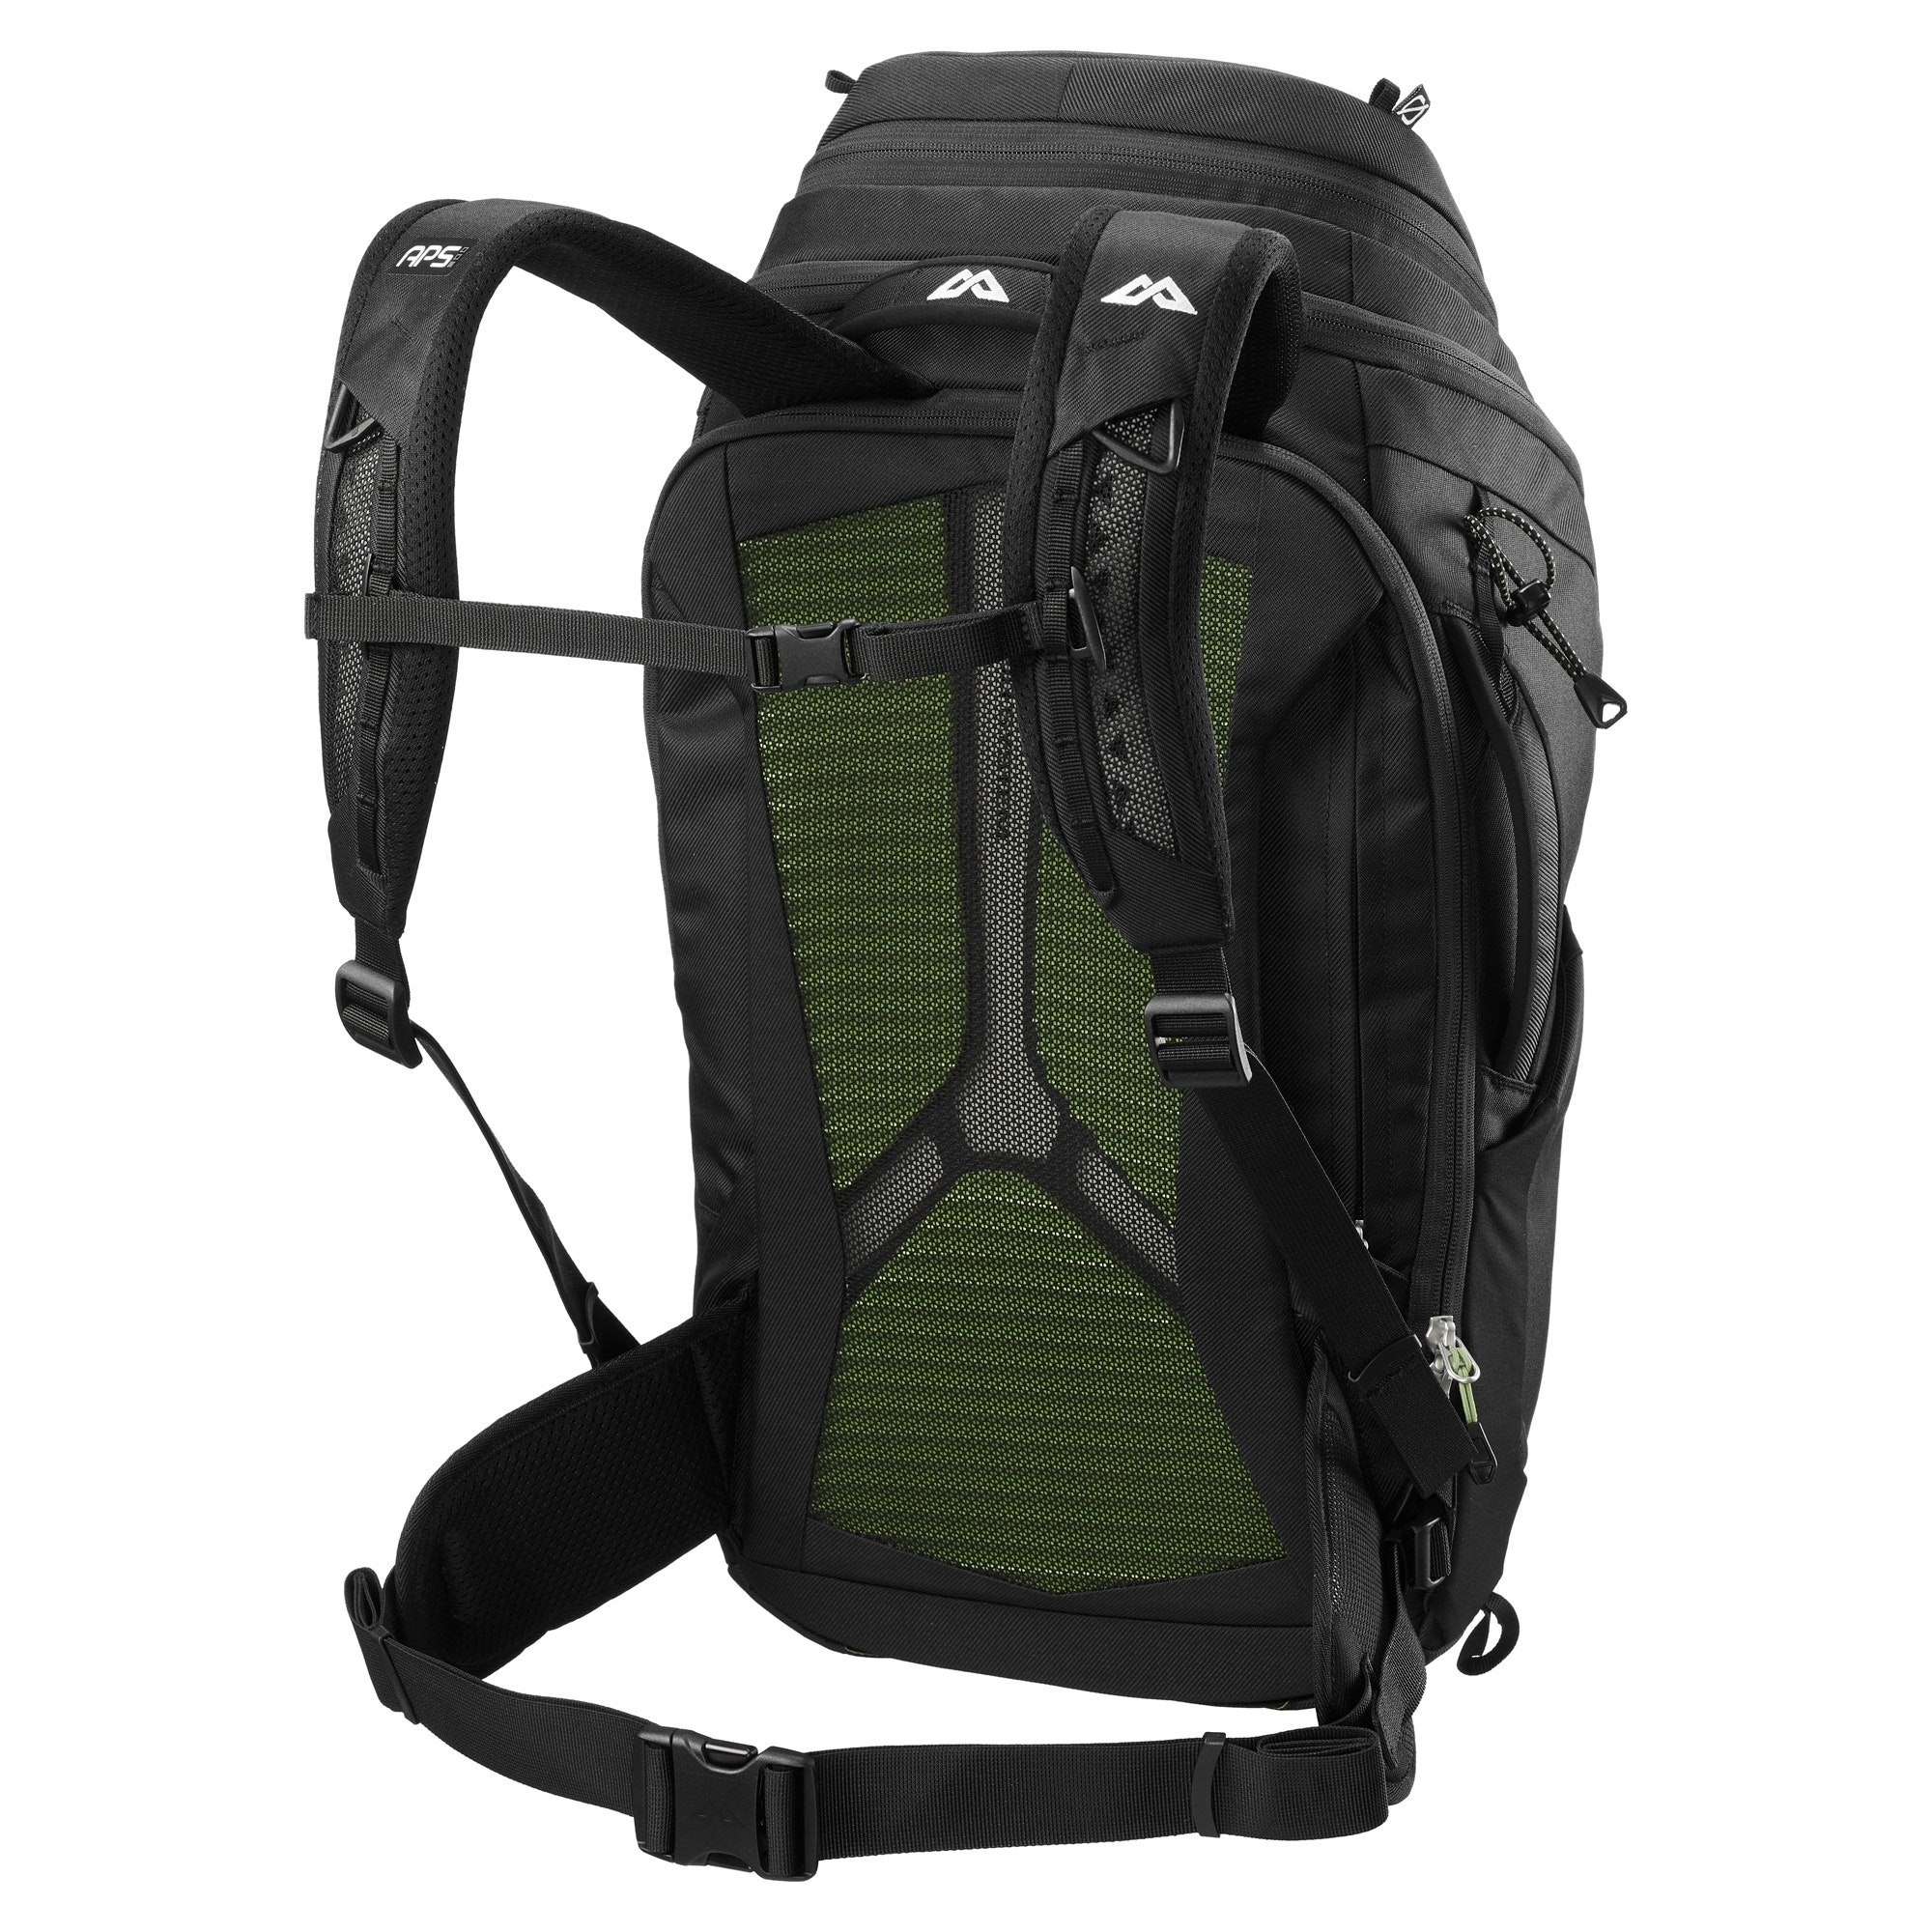 NEW-Kathmandu-Transfer-28L-Commuter-Bag-Laptop-Backpack-Rucksack-Travel-Pack-v3 thumbnail 8